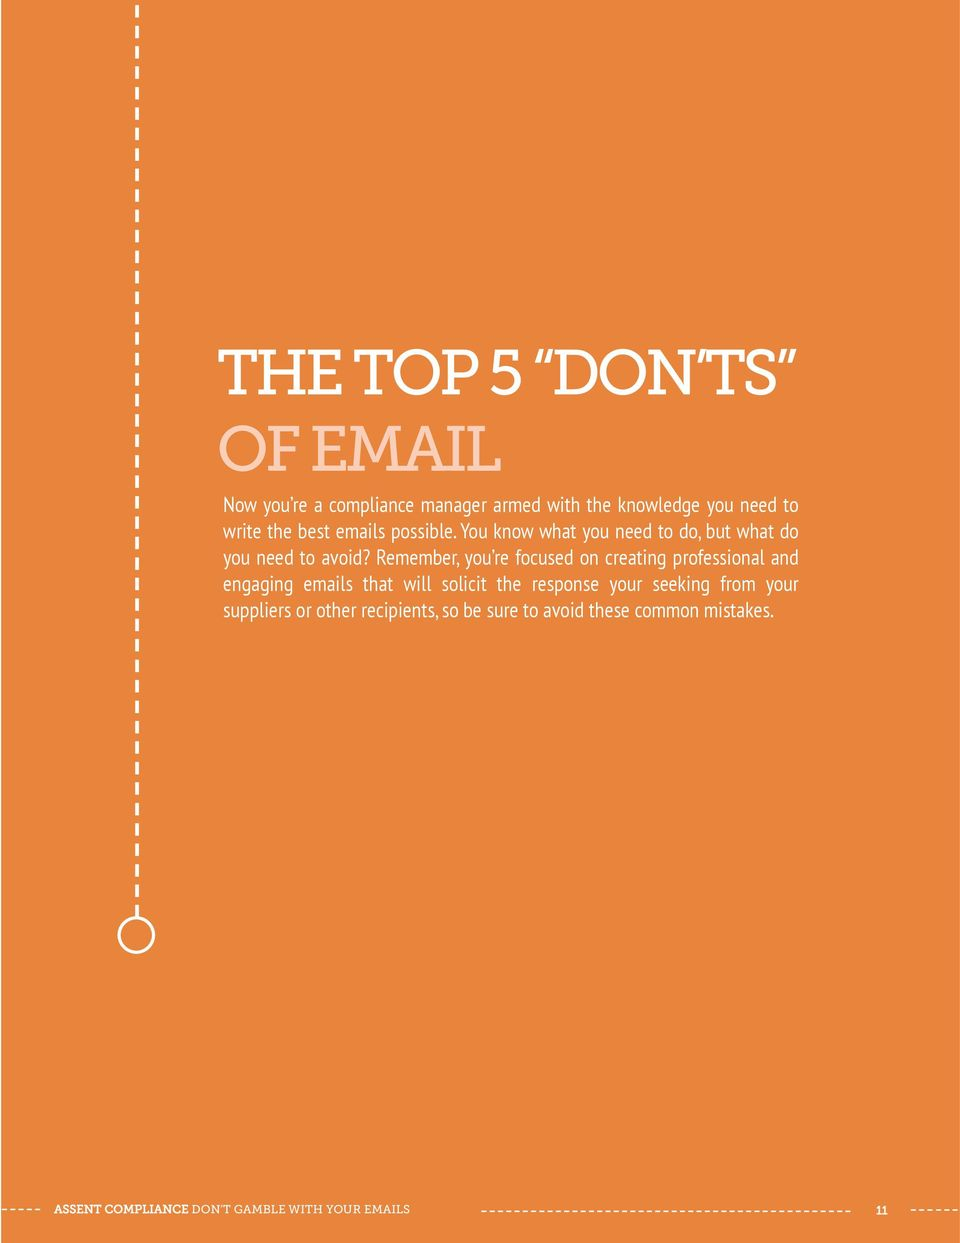 Remember, you re focused on creating professional and engaging emails that will solicit the